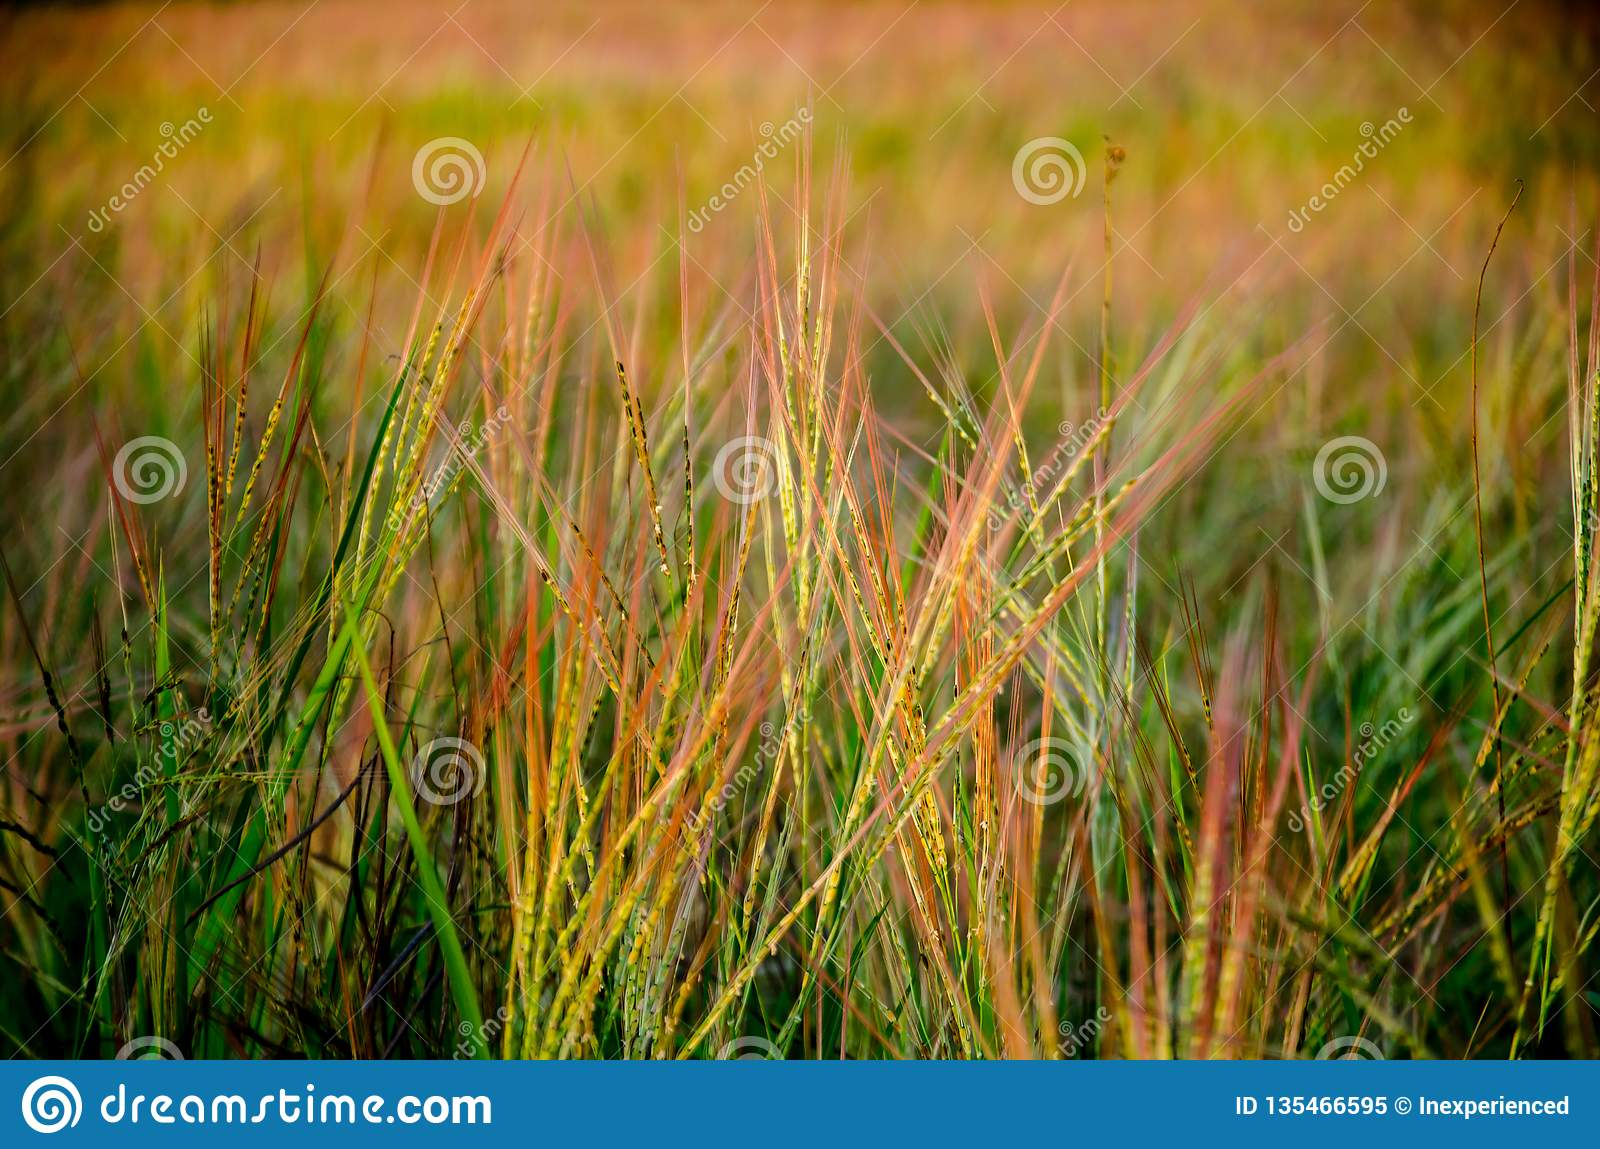 Grassland the first thing of life in Thailand